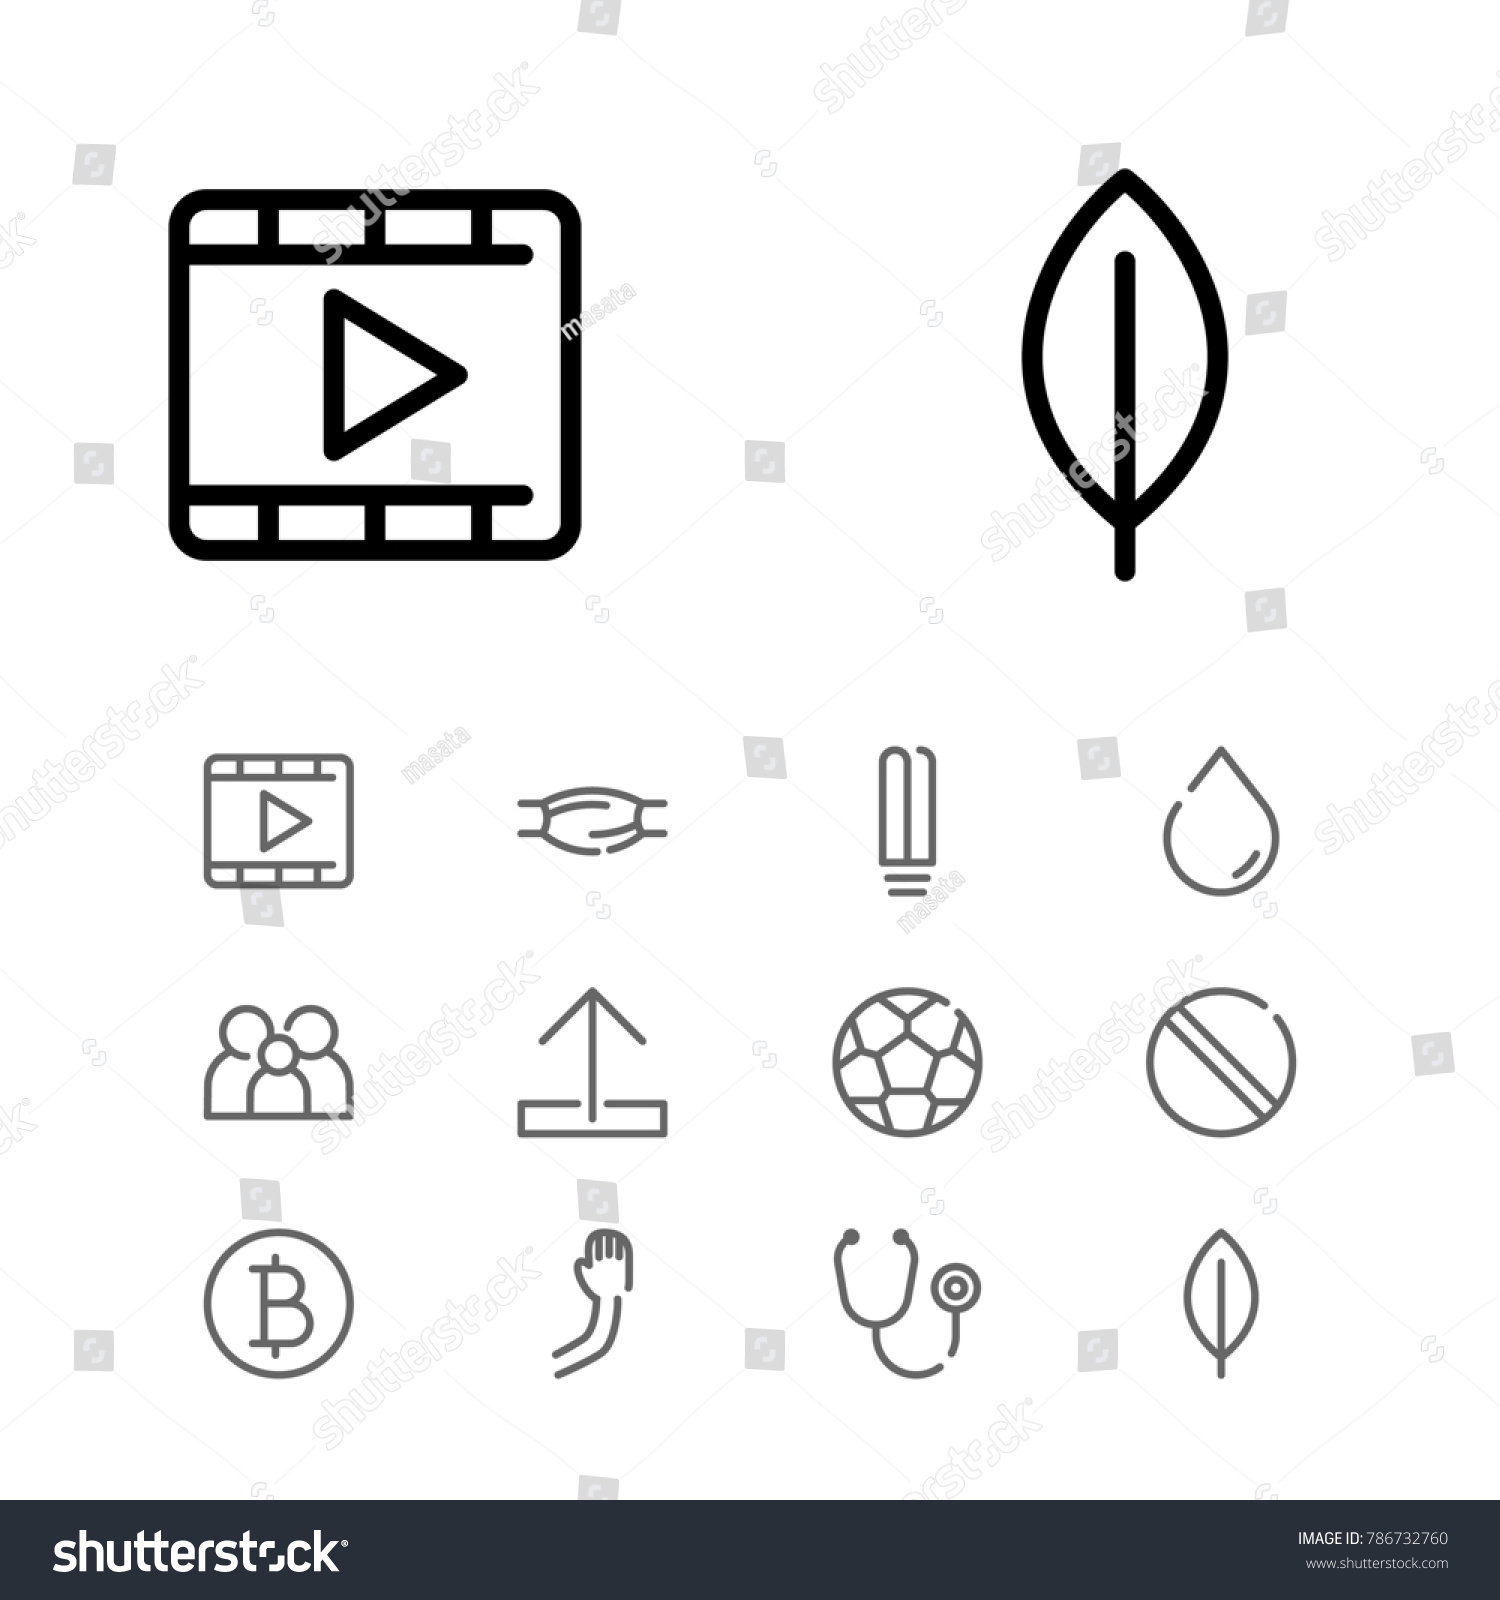 Water Drop Icon Bitcoin Family Arm Stock Illustration Royalty Free